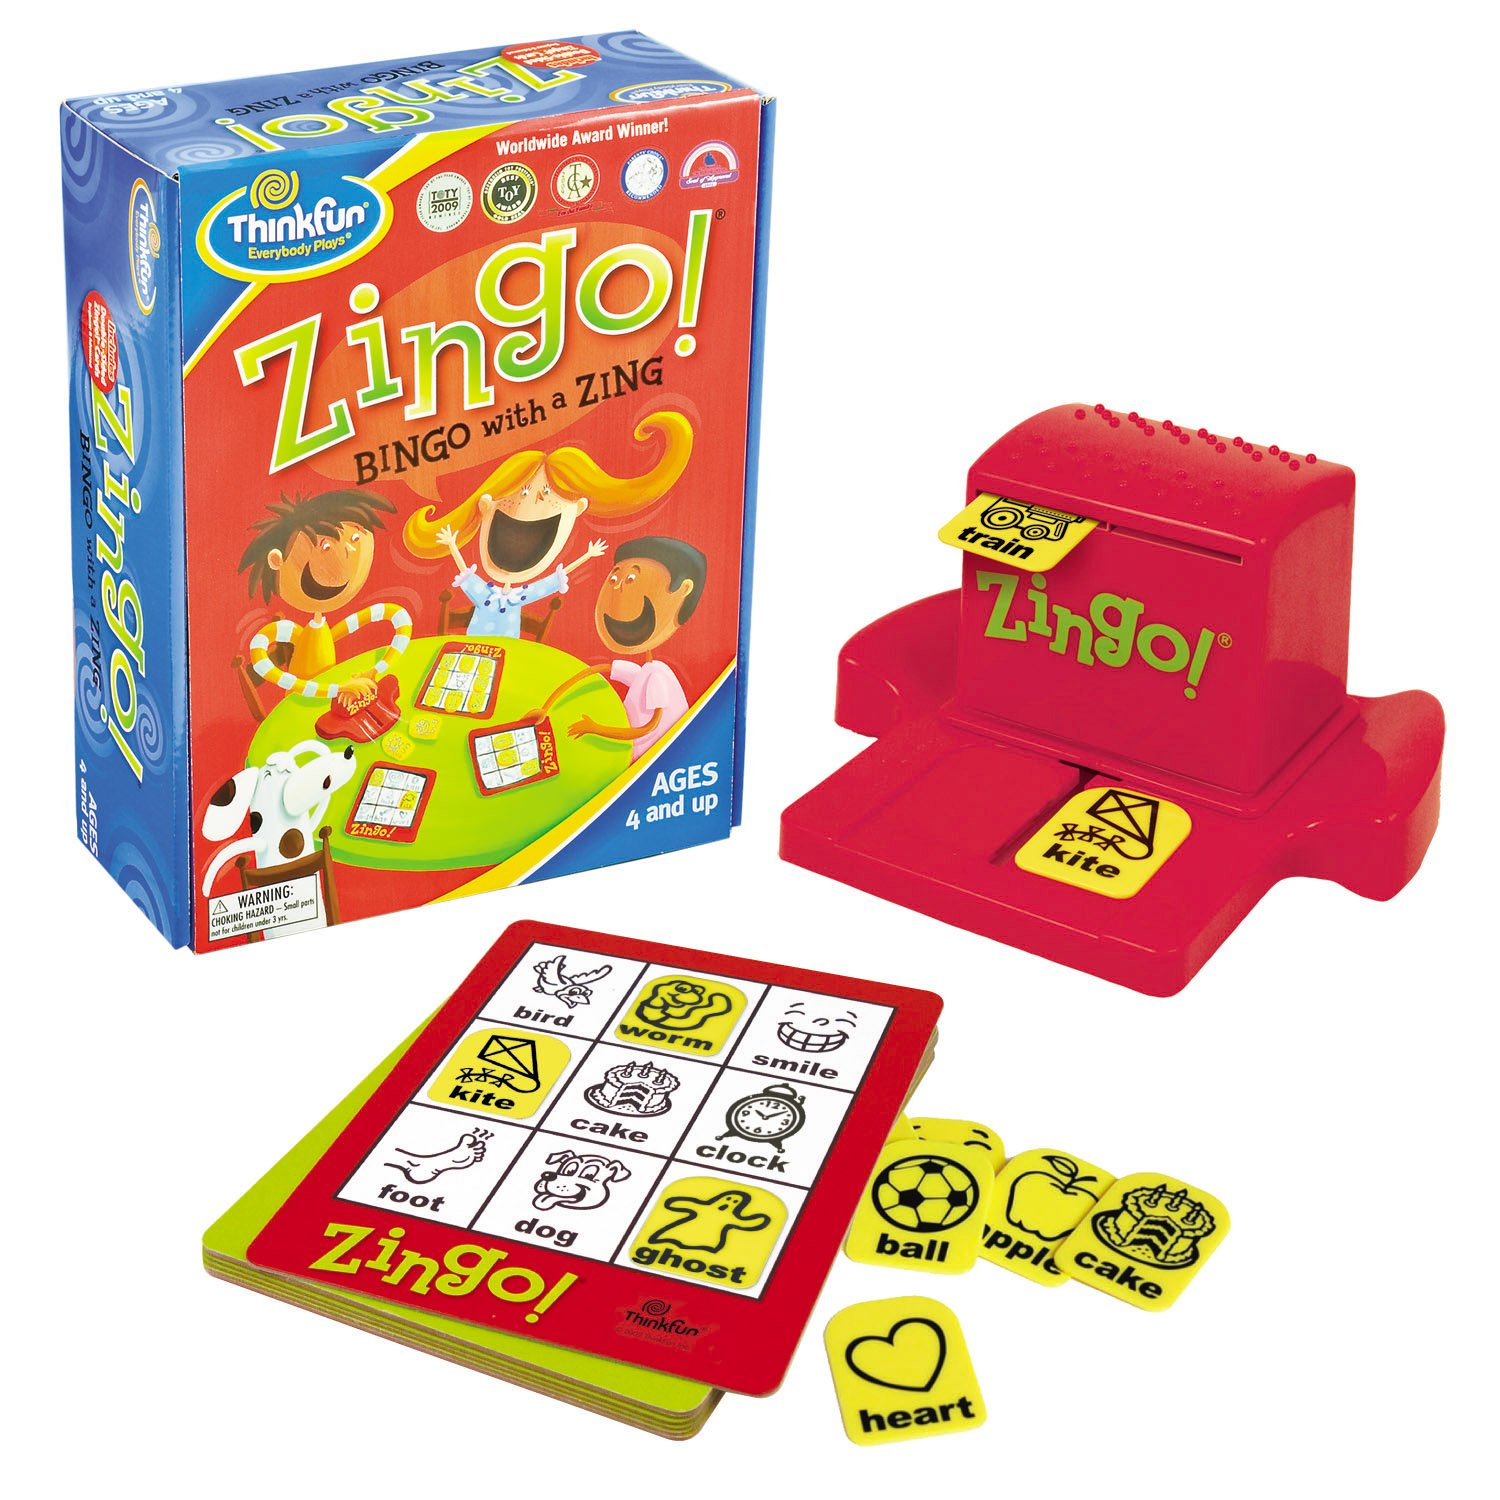 Co coloring games for 4 year olds online - Amazon Com Thinkfun Zingo Discontinued By Manufacturer Game Amazon Launchpad